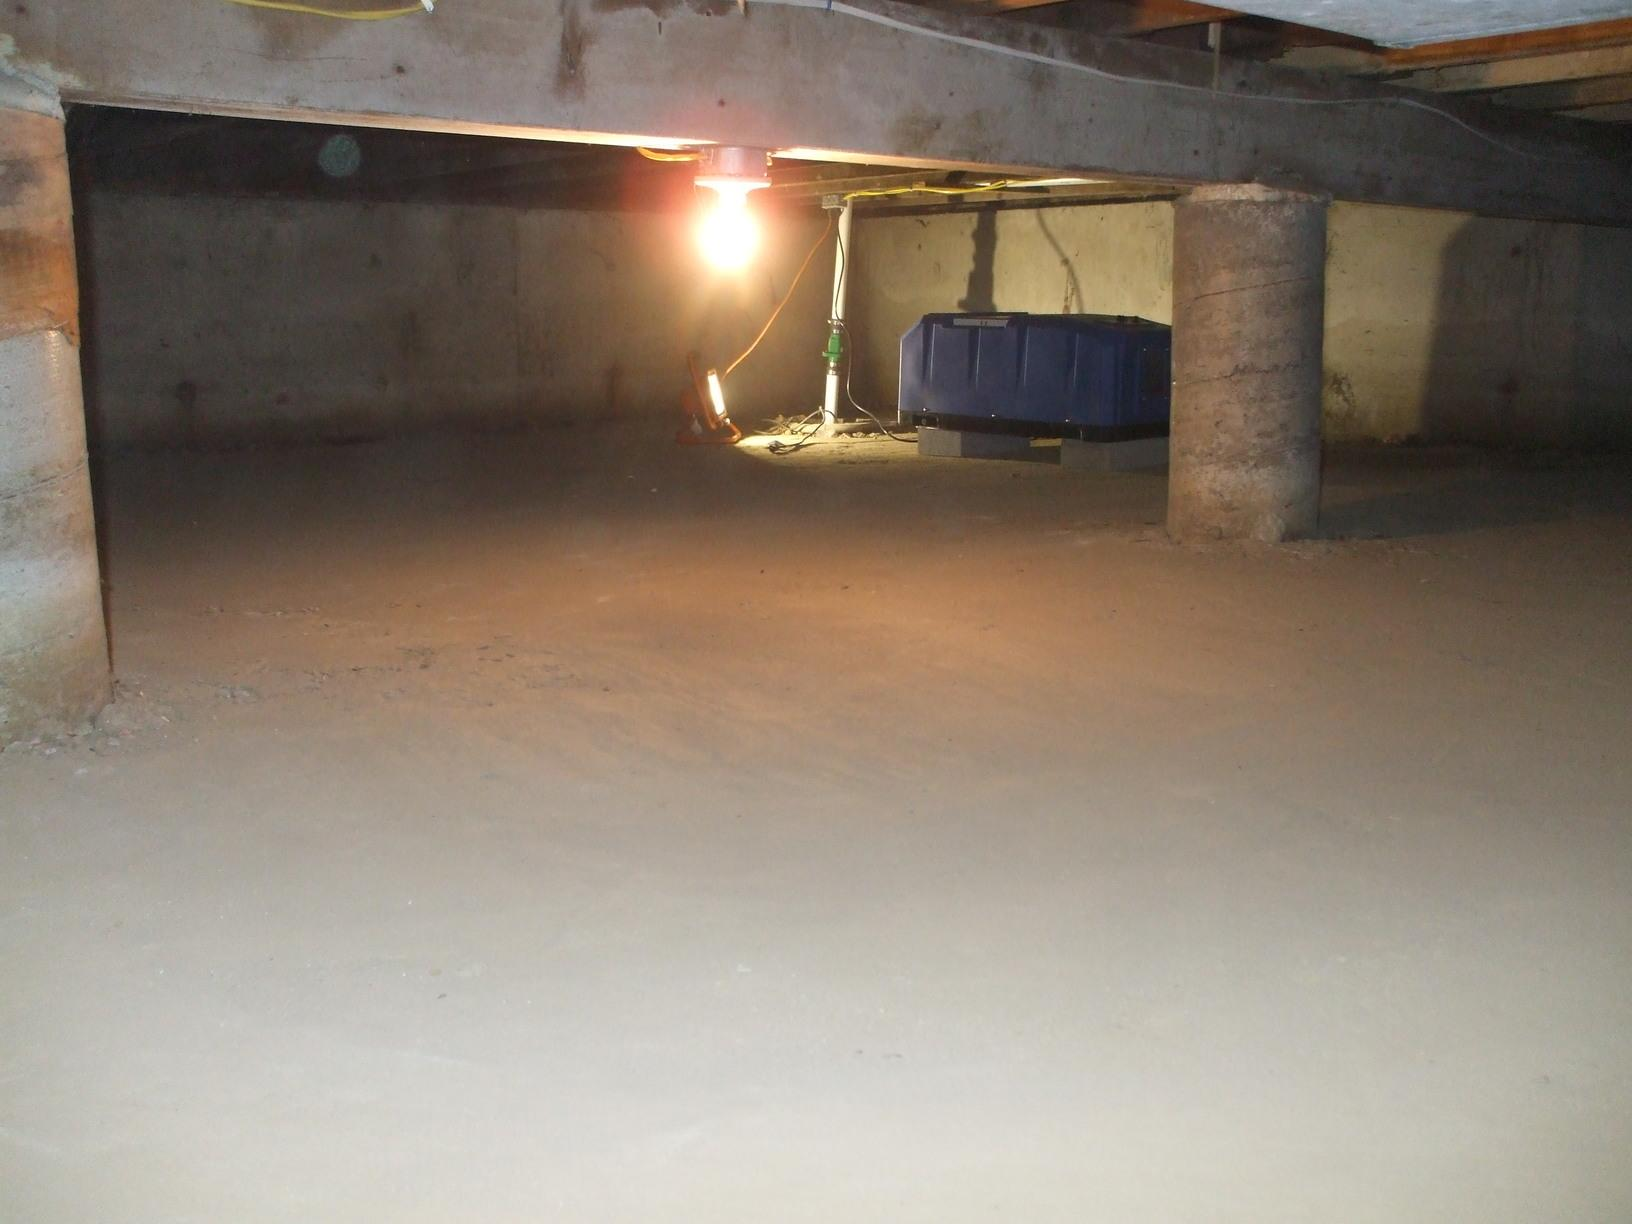 Nyack Crawlspace transformation and dehumidifier instillation - After Photo